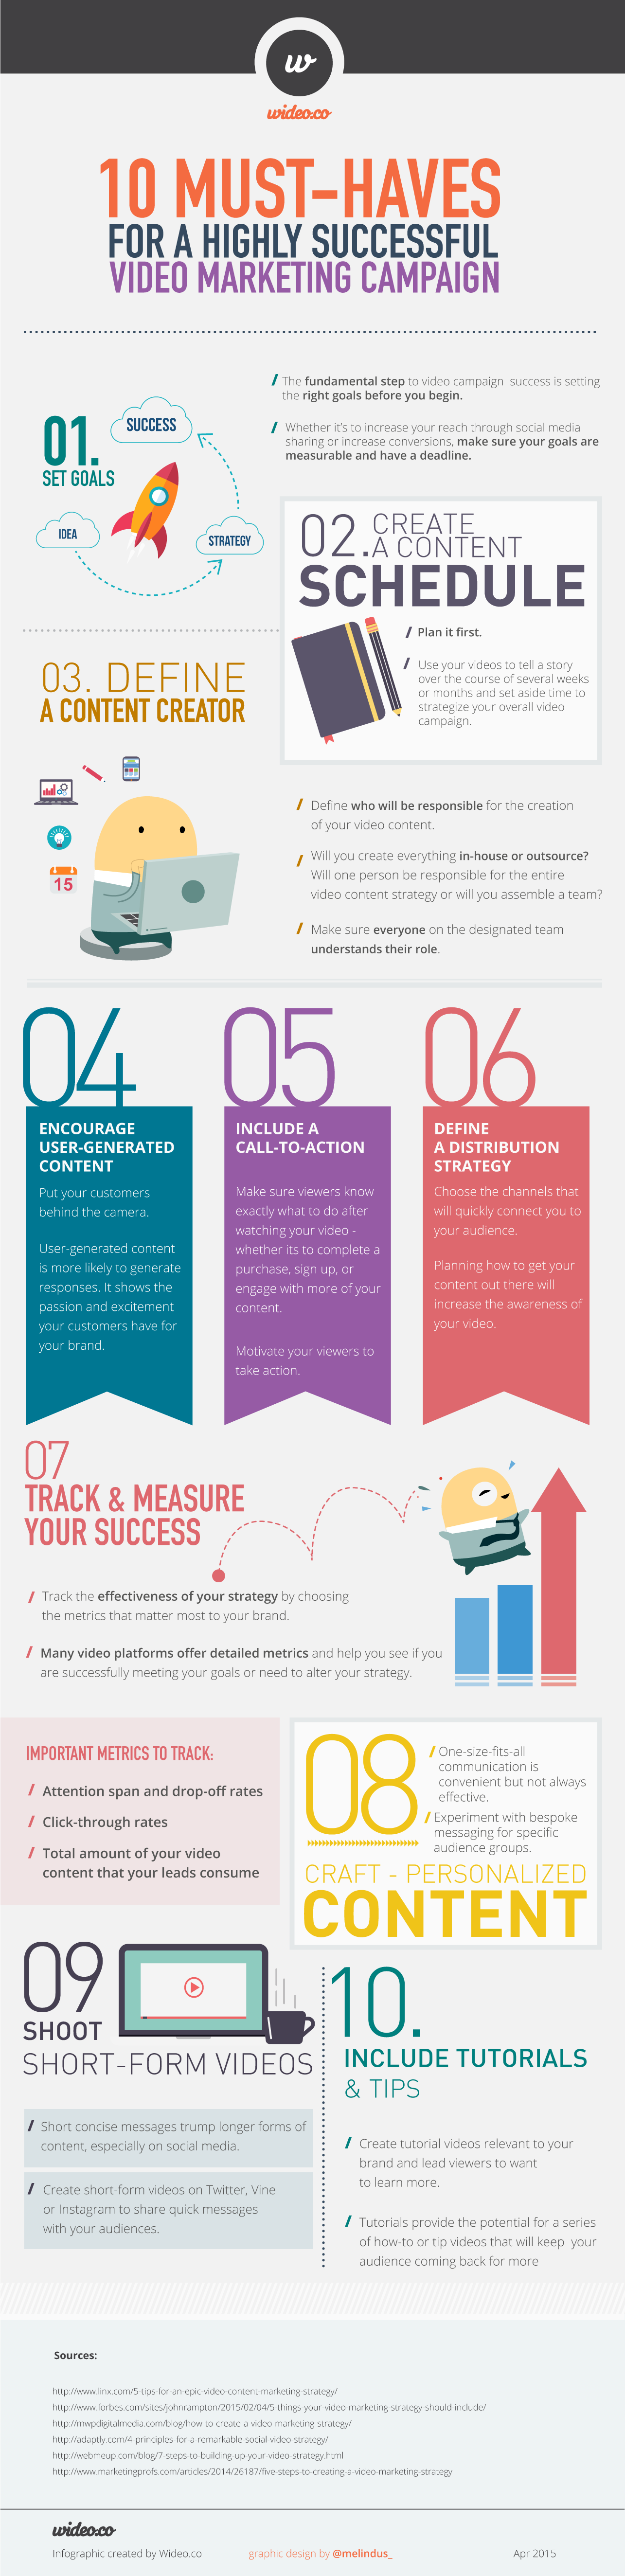 10 Must Haves for a Highly Successful Video Marketing Campaign [Infographic]